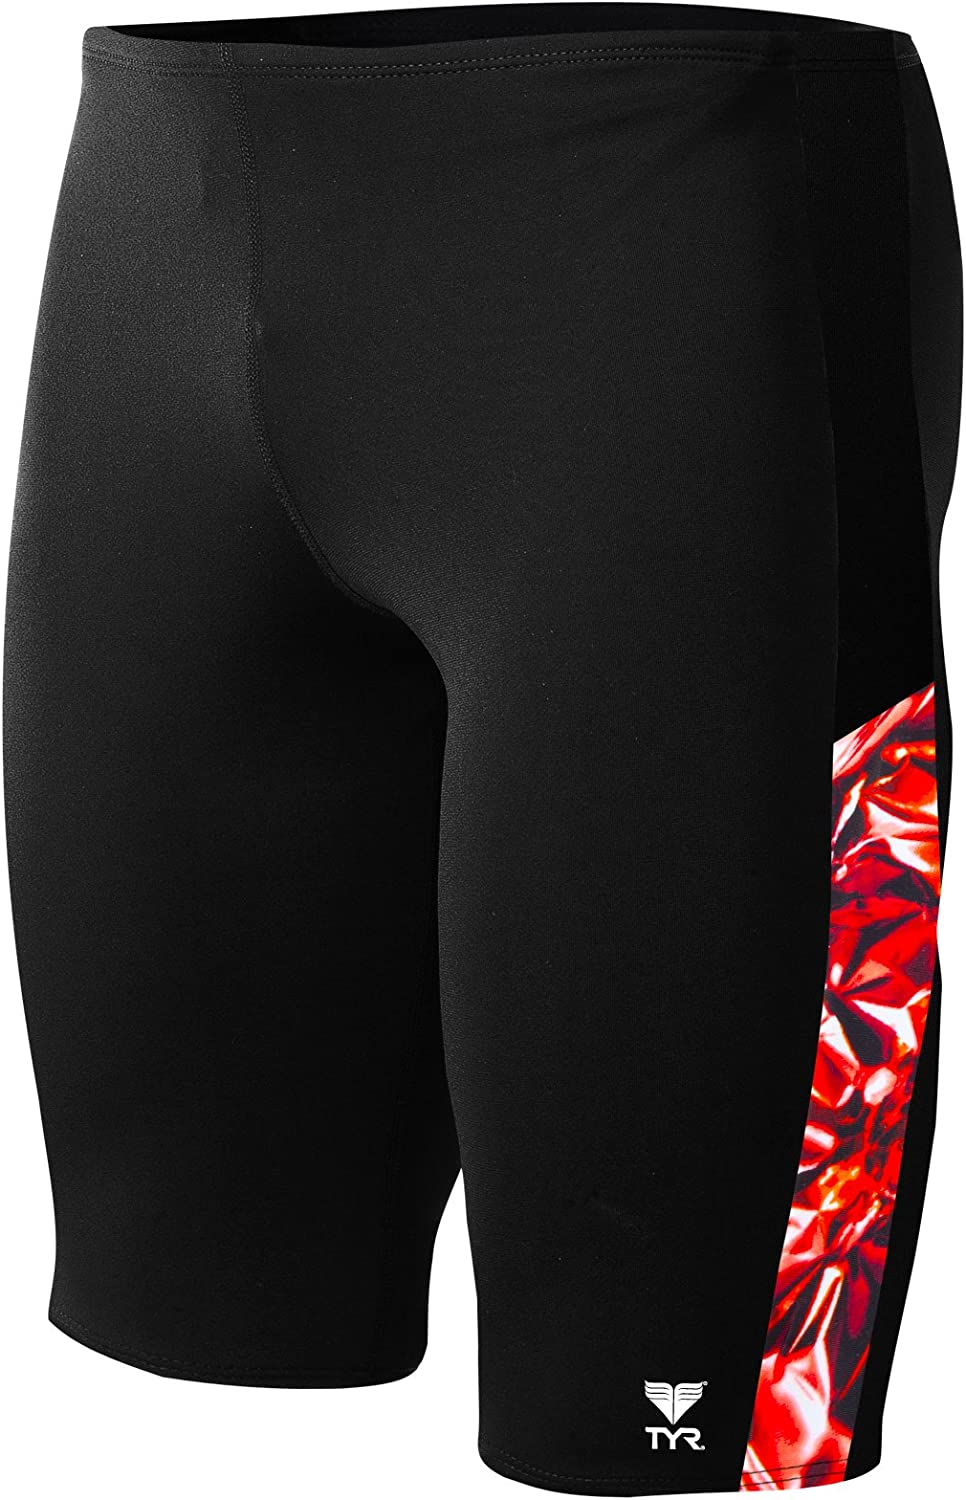 Max 86% OFF TYR Boy's Starship OFFicial store Suit Jammer Swim